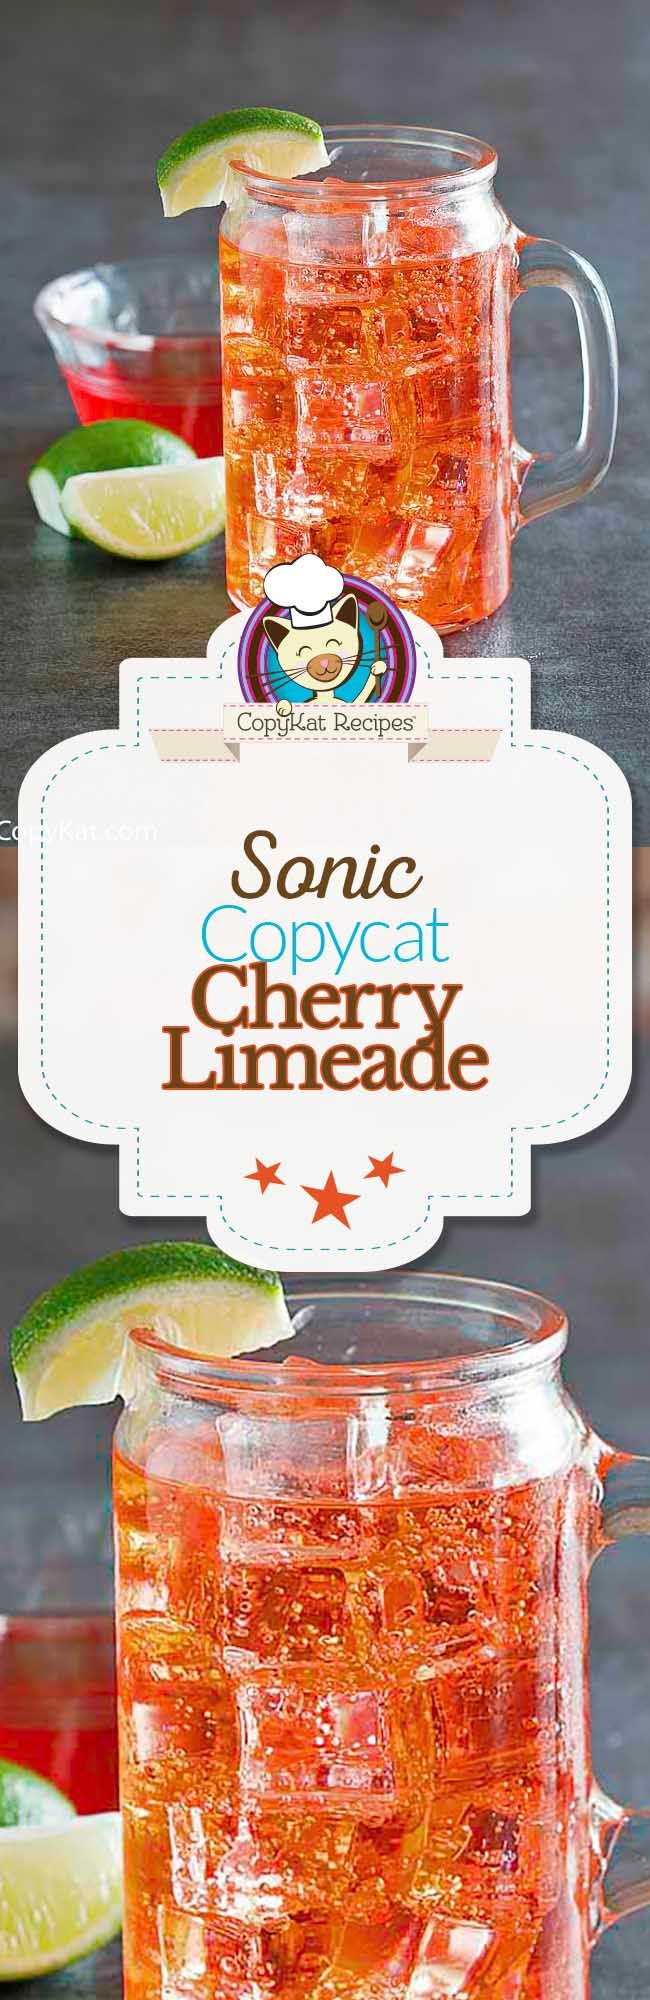 You can recreate the famous Sonic Cherry Limeade at home with this easy copycat recipe.